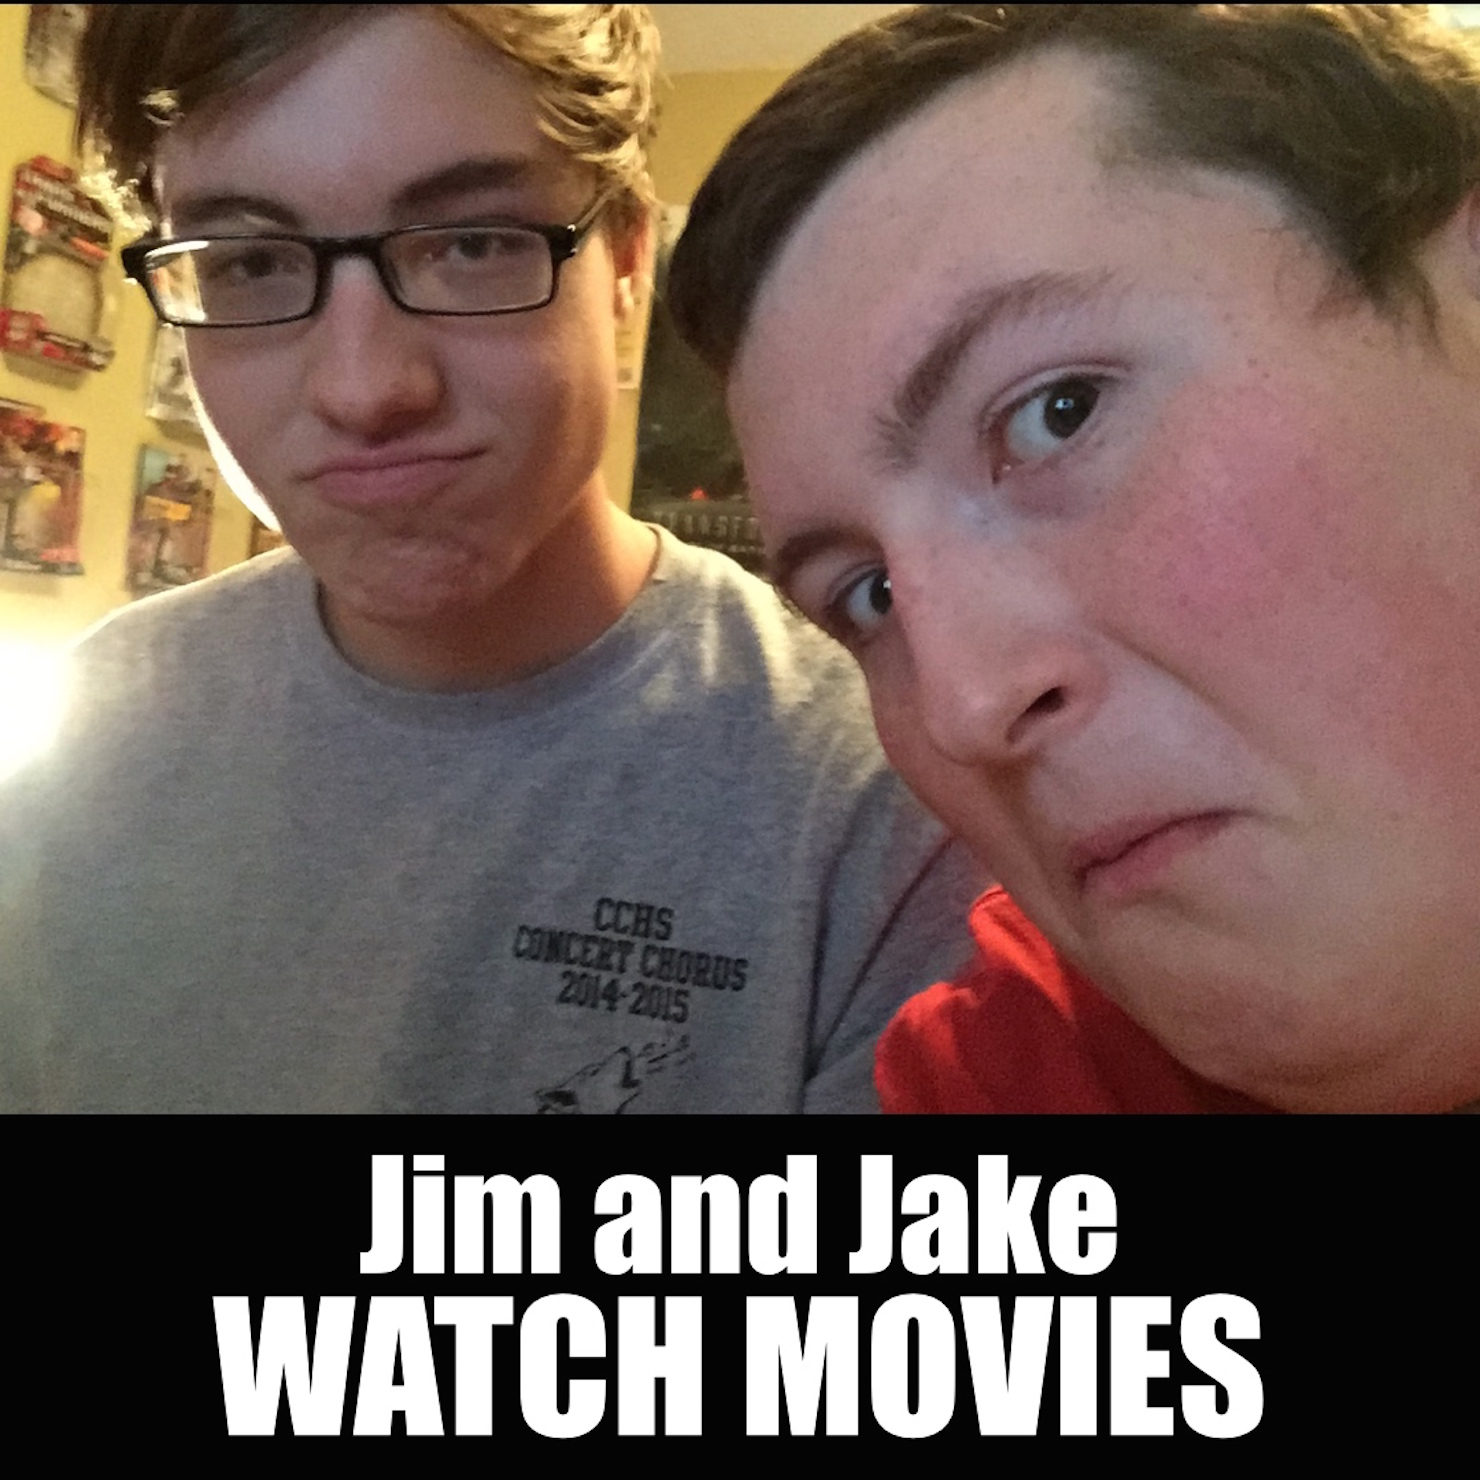 Jim and Jake Watch Movies